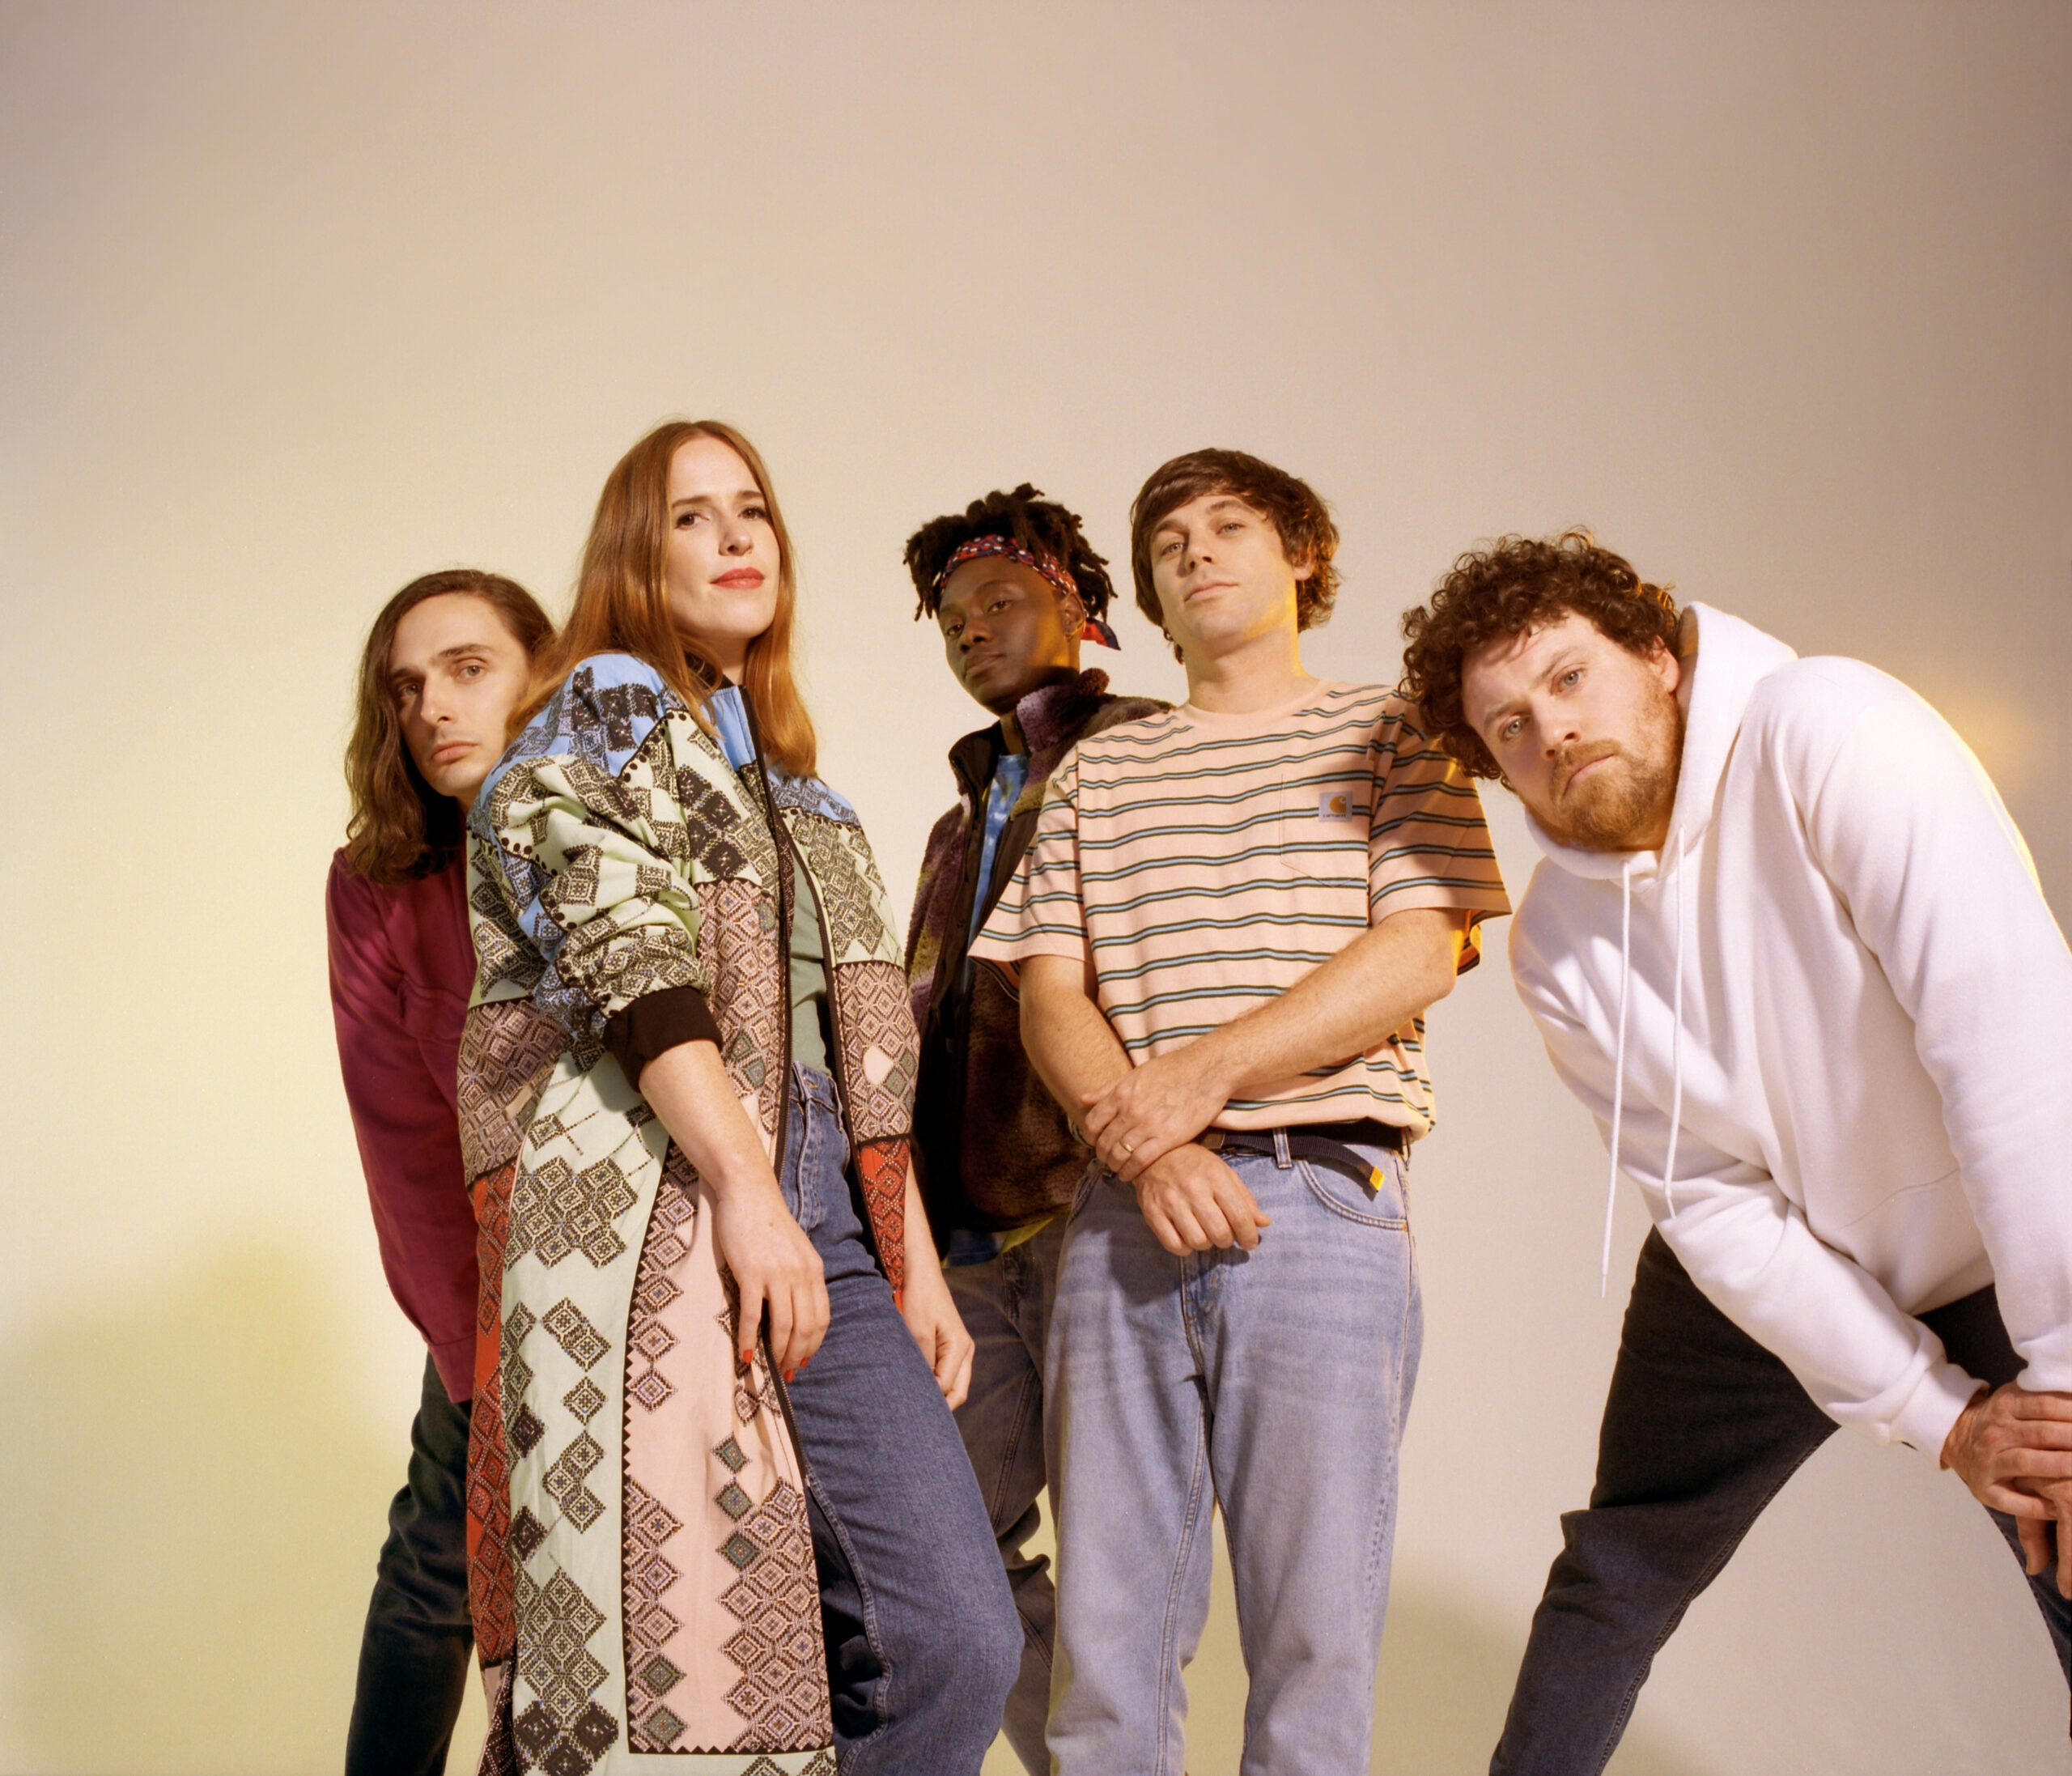 NEWS: Metronomy release surprise 'Posse EP, Vol One' feat Sorry, Biig Pinty, Folly Group & 2022 Dates